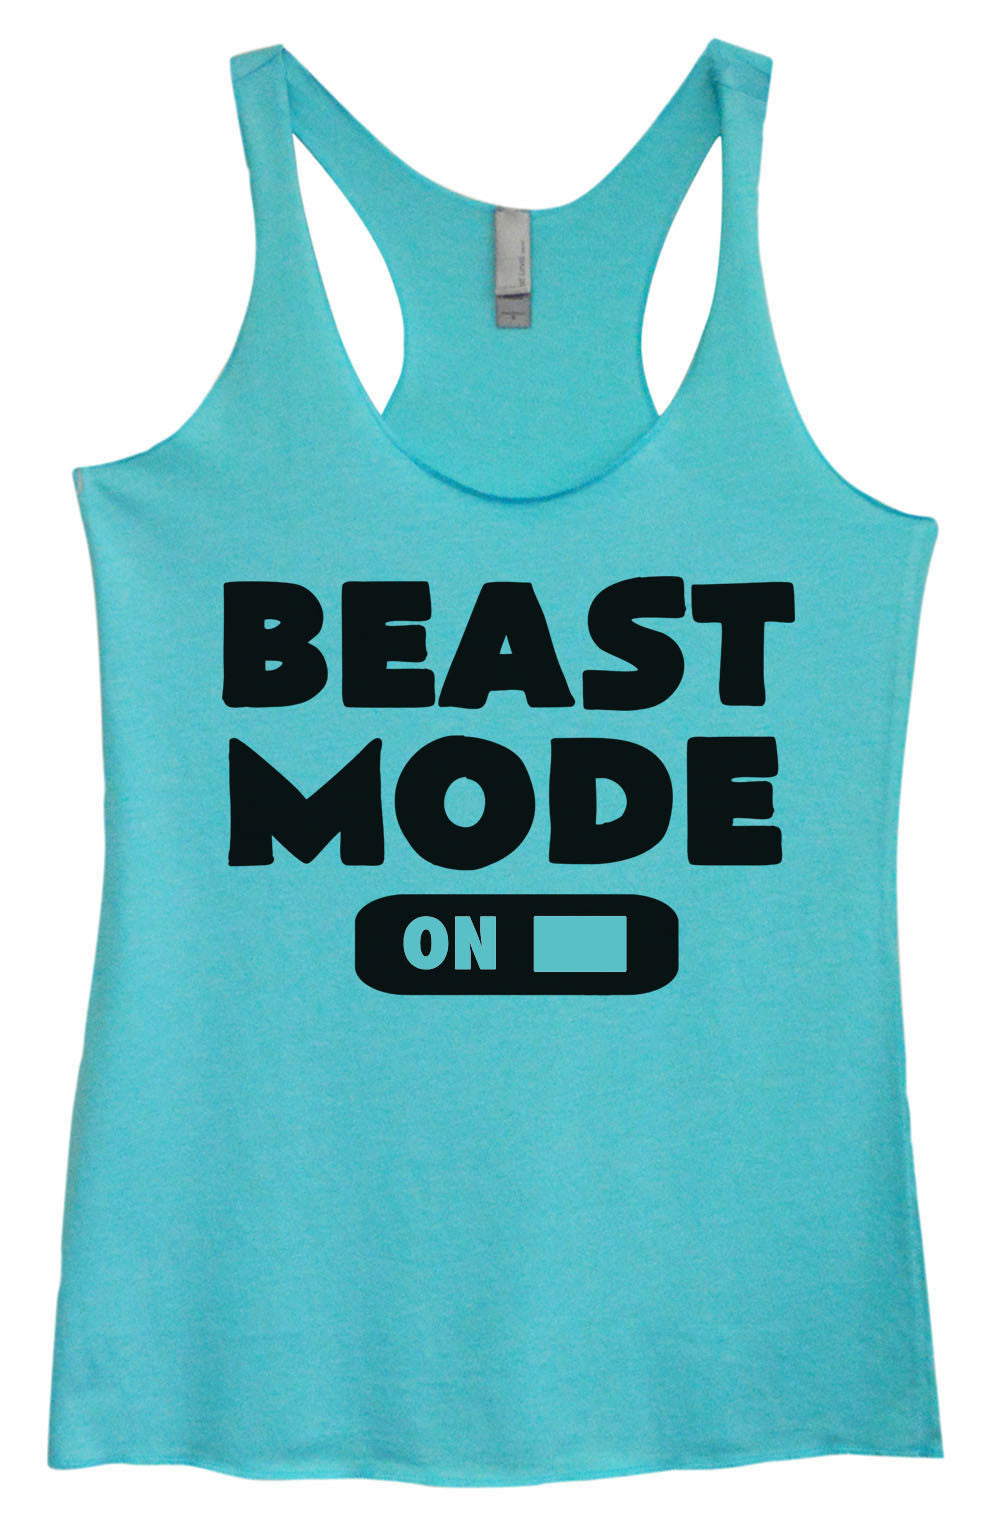 Womens Fashion Triblend Tank Top - Beast Mode On - Tri-764 - Funny Shirts Tank Tops Burnouts and Triblends  - 1